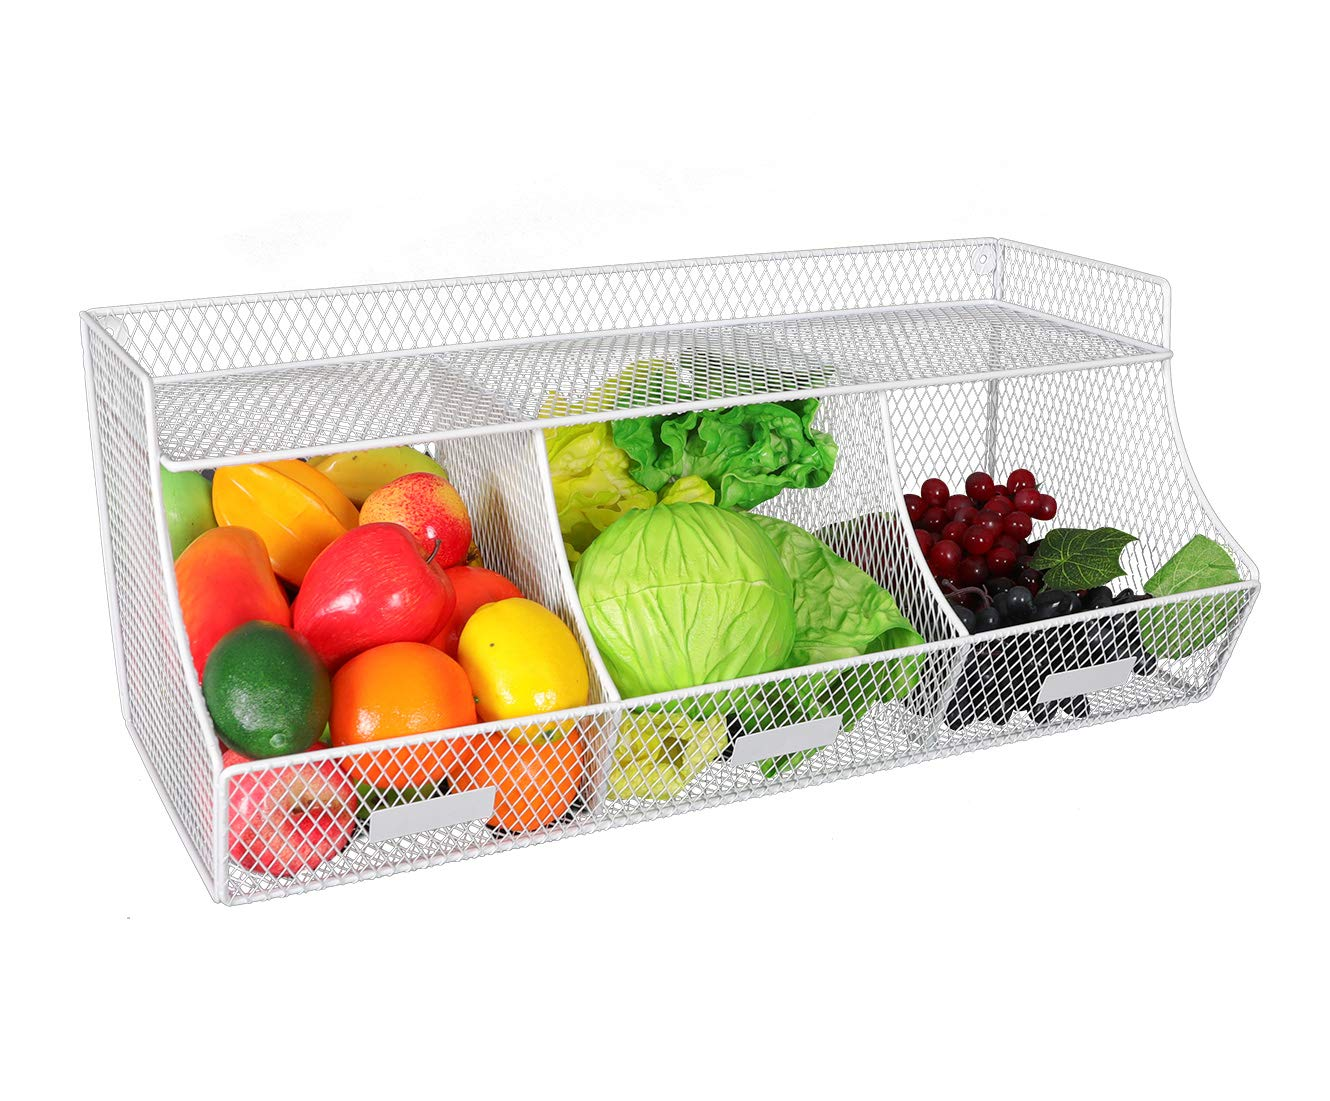 TQVAI Large Wall Mounted Fruit Basket Hanging Kitchen Storage Bin No Assembly Required, White